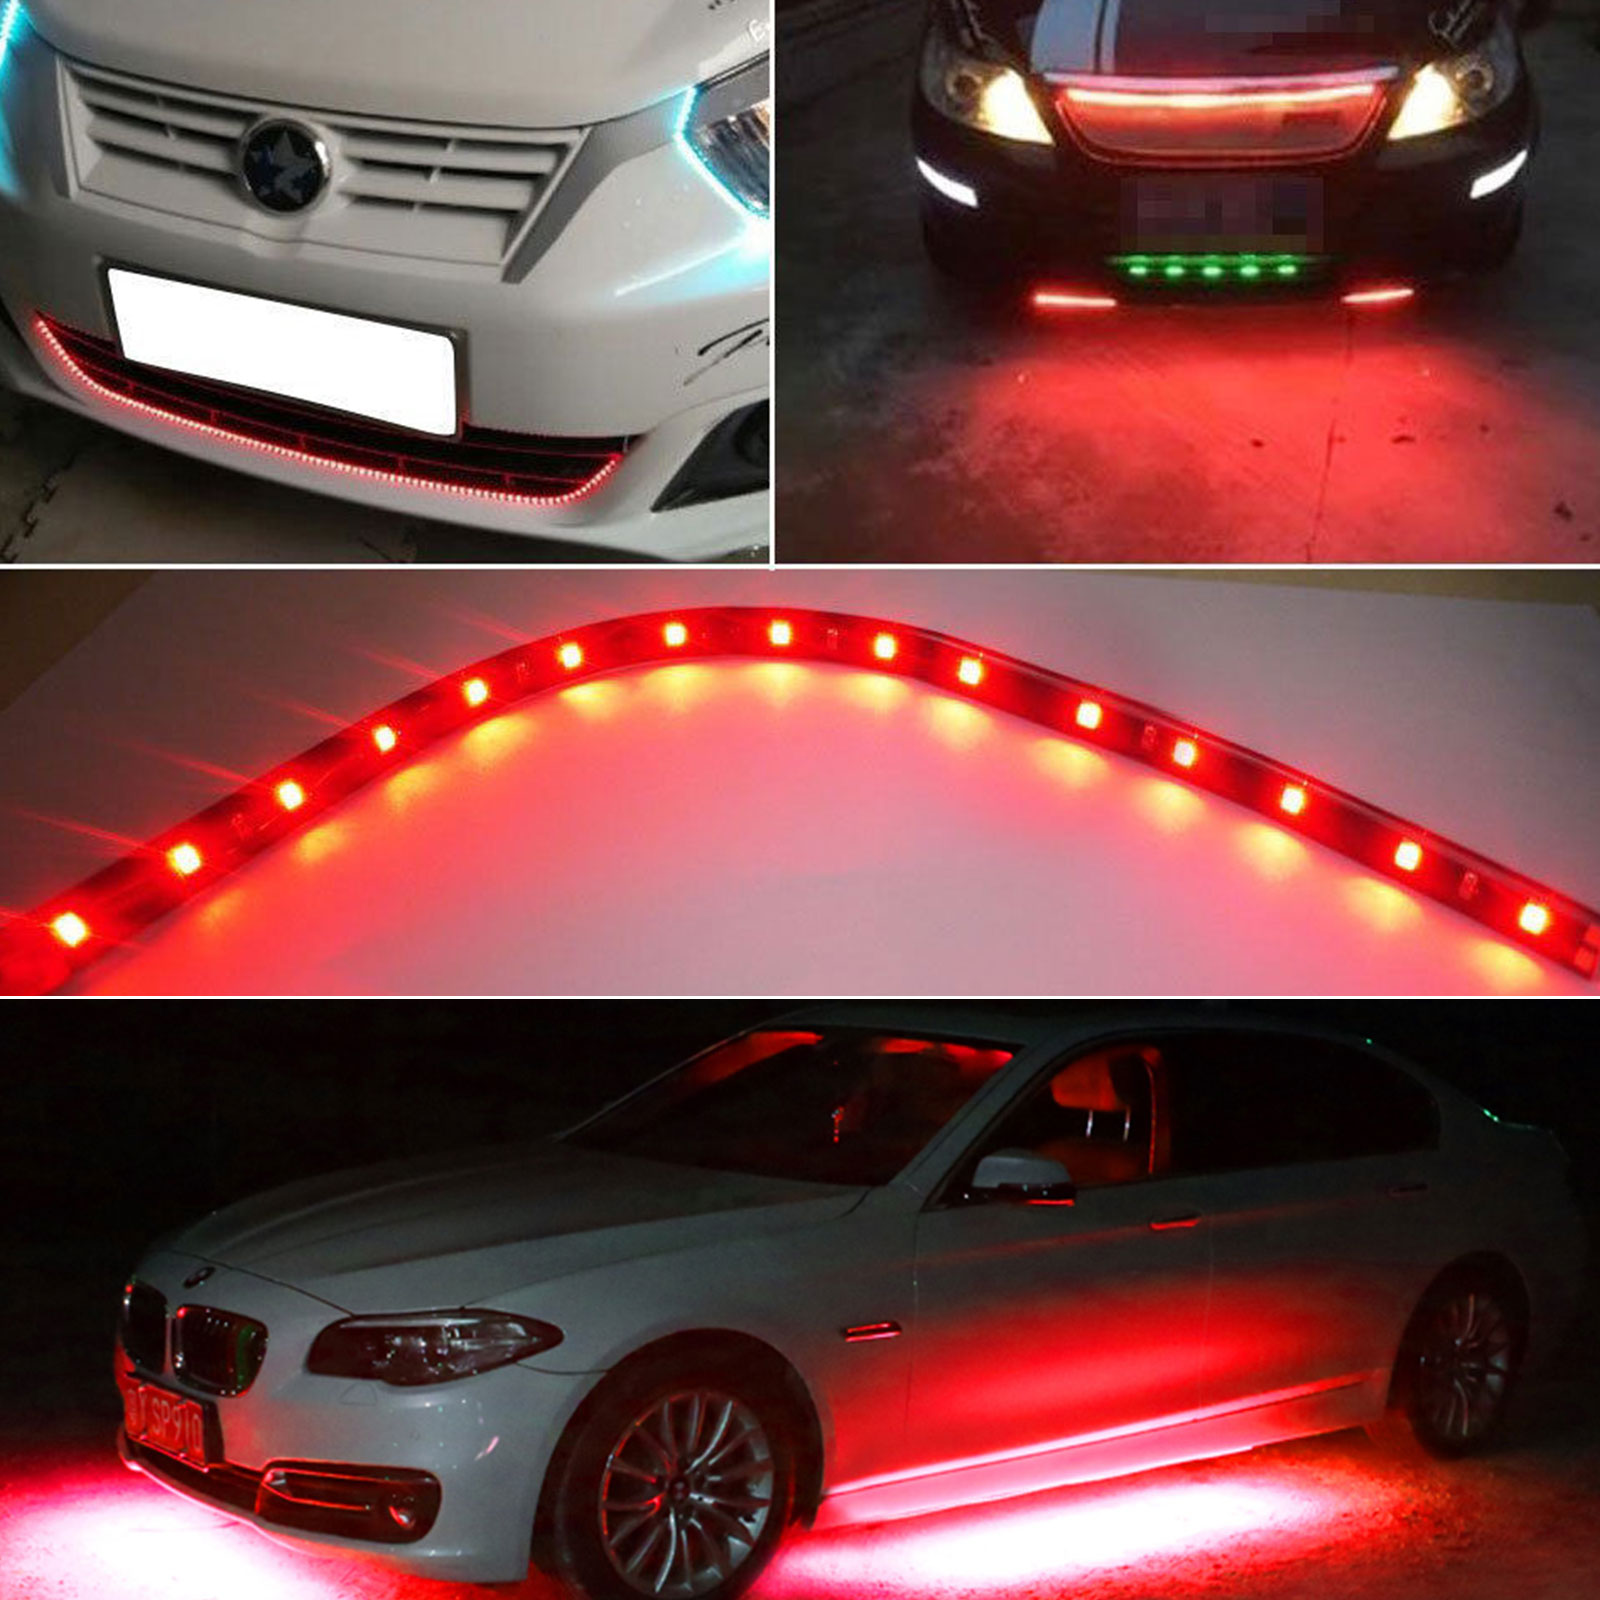 6-12-Pack-Waterproof-Flexible-DC12V-LED-Strip-Underbody-Light-for-Car-Motorcycle thumbnail 16